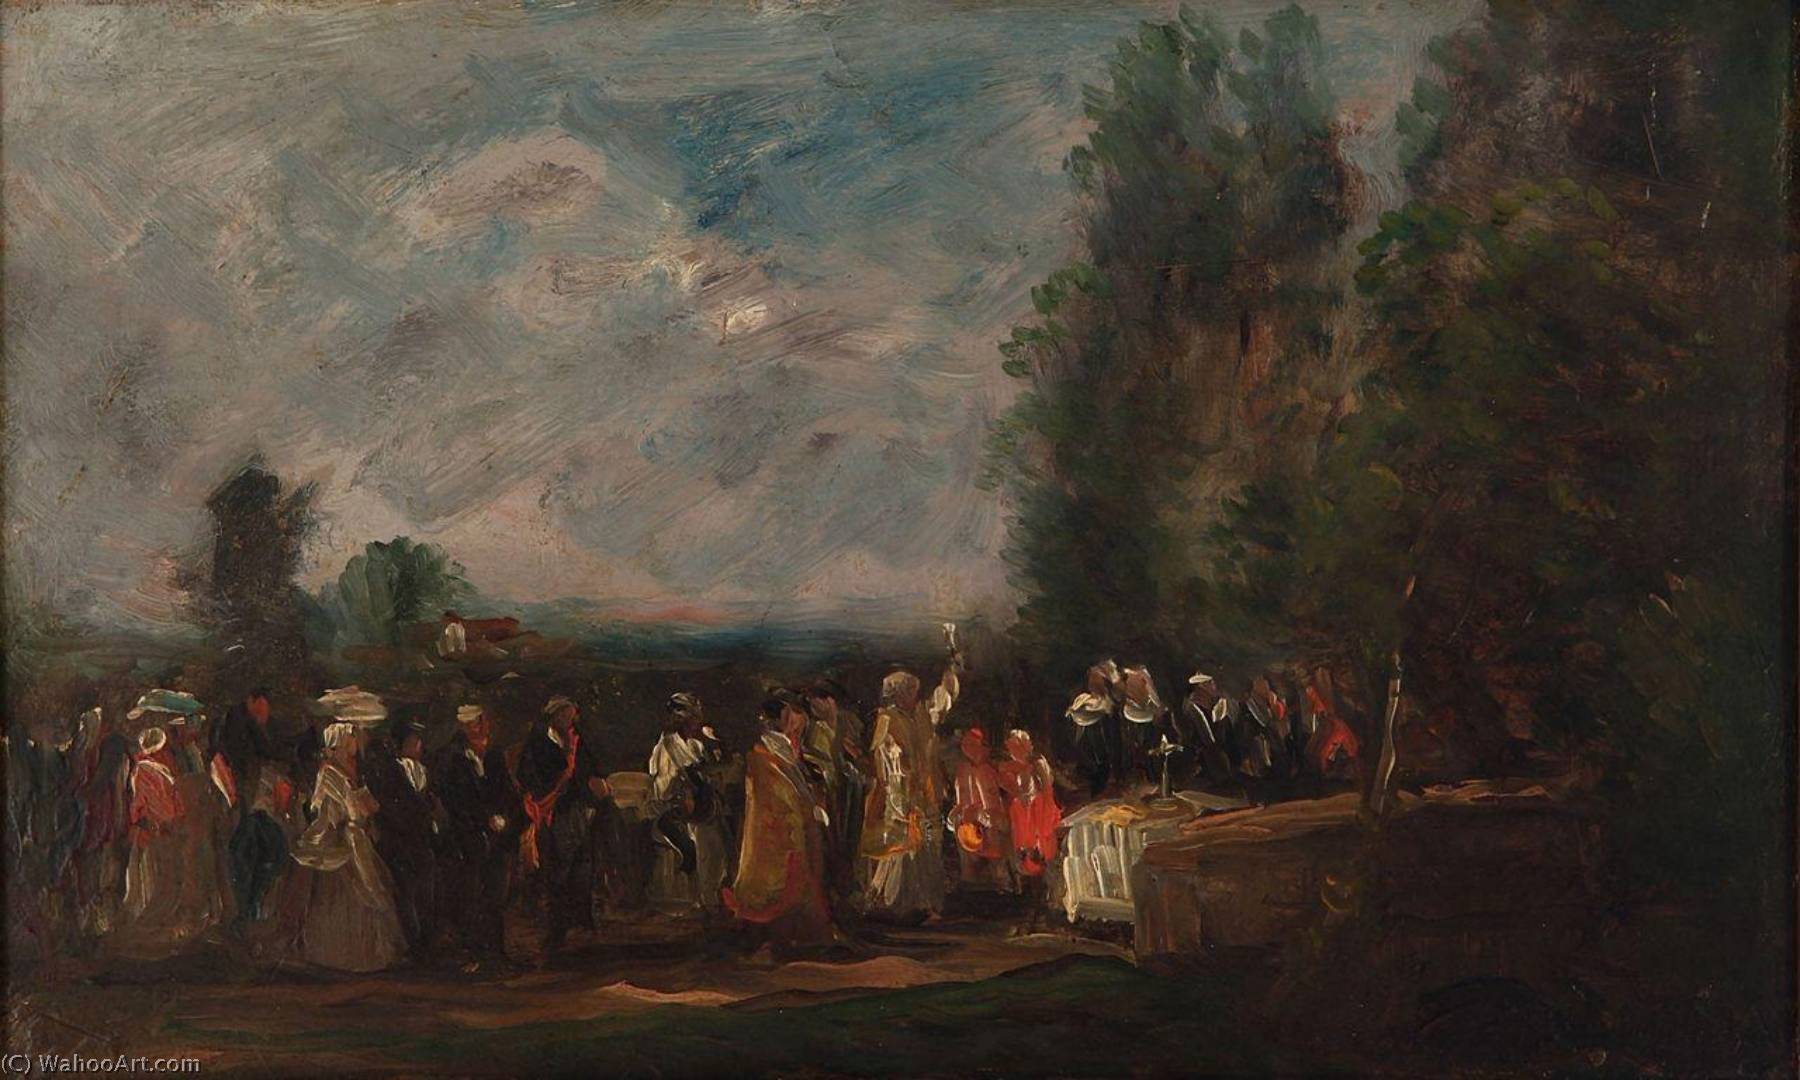 Landscape with Figures, Oil On Panel by Charles François Daubigny (1817-1878, France)